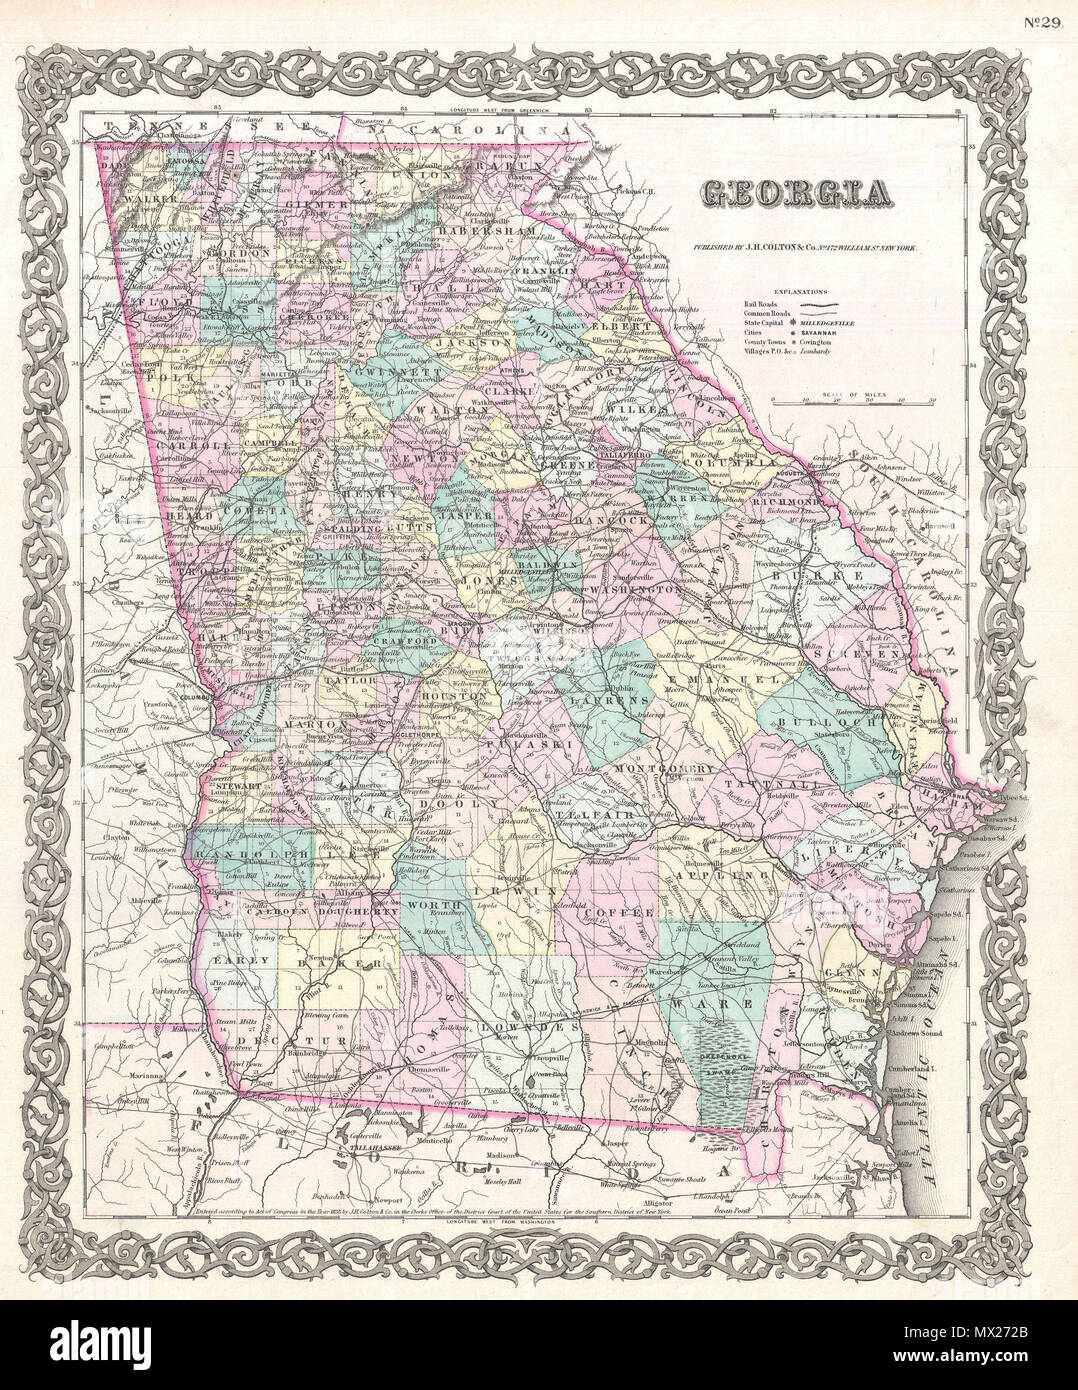 Georgia. English: A beautiful 1855 first edition example of ... on map of fayetteville georgia, map of savannah, map of georgia glynn, map of georgia state, map of marietta georgia, map of augusta georgia, map of colorado, map of georgia counties, map of alaska, map of columbus georgia area, map of georgia country, map of alpharetta georgia area, georgia's cities, map of georgia colleges, map of kentucky, map of sc, map of ga, georgia map with cities, map of north georgia, map of georgia waterways,